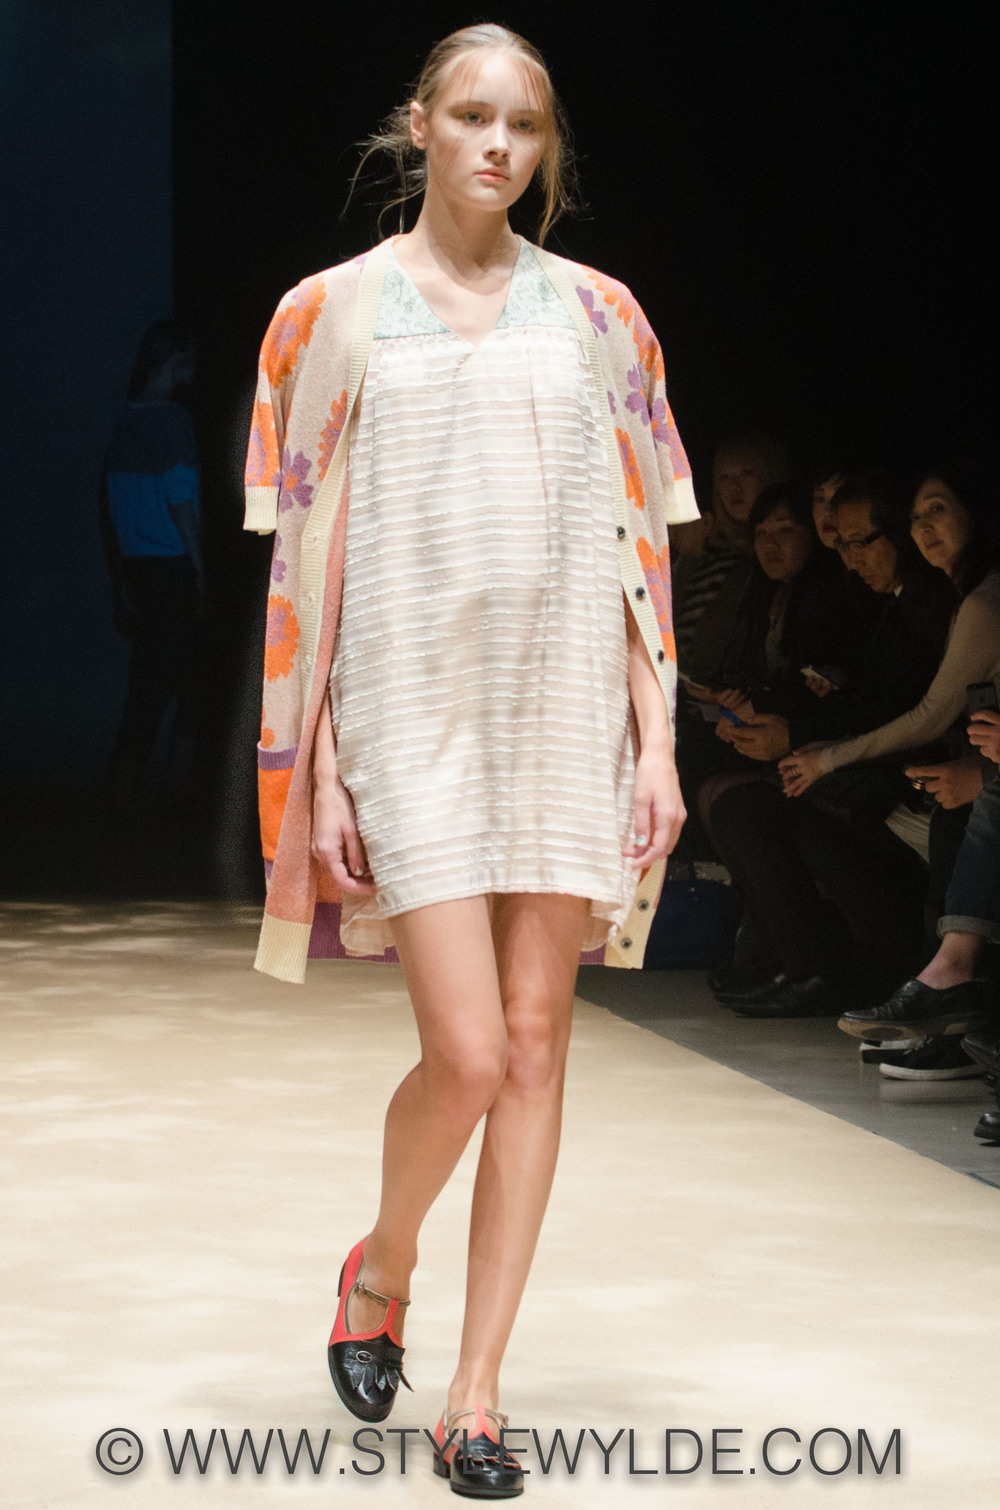 StyleWylde_InProcess_SS2014 (1 of 1)-3.jpg